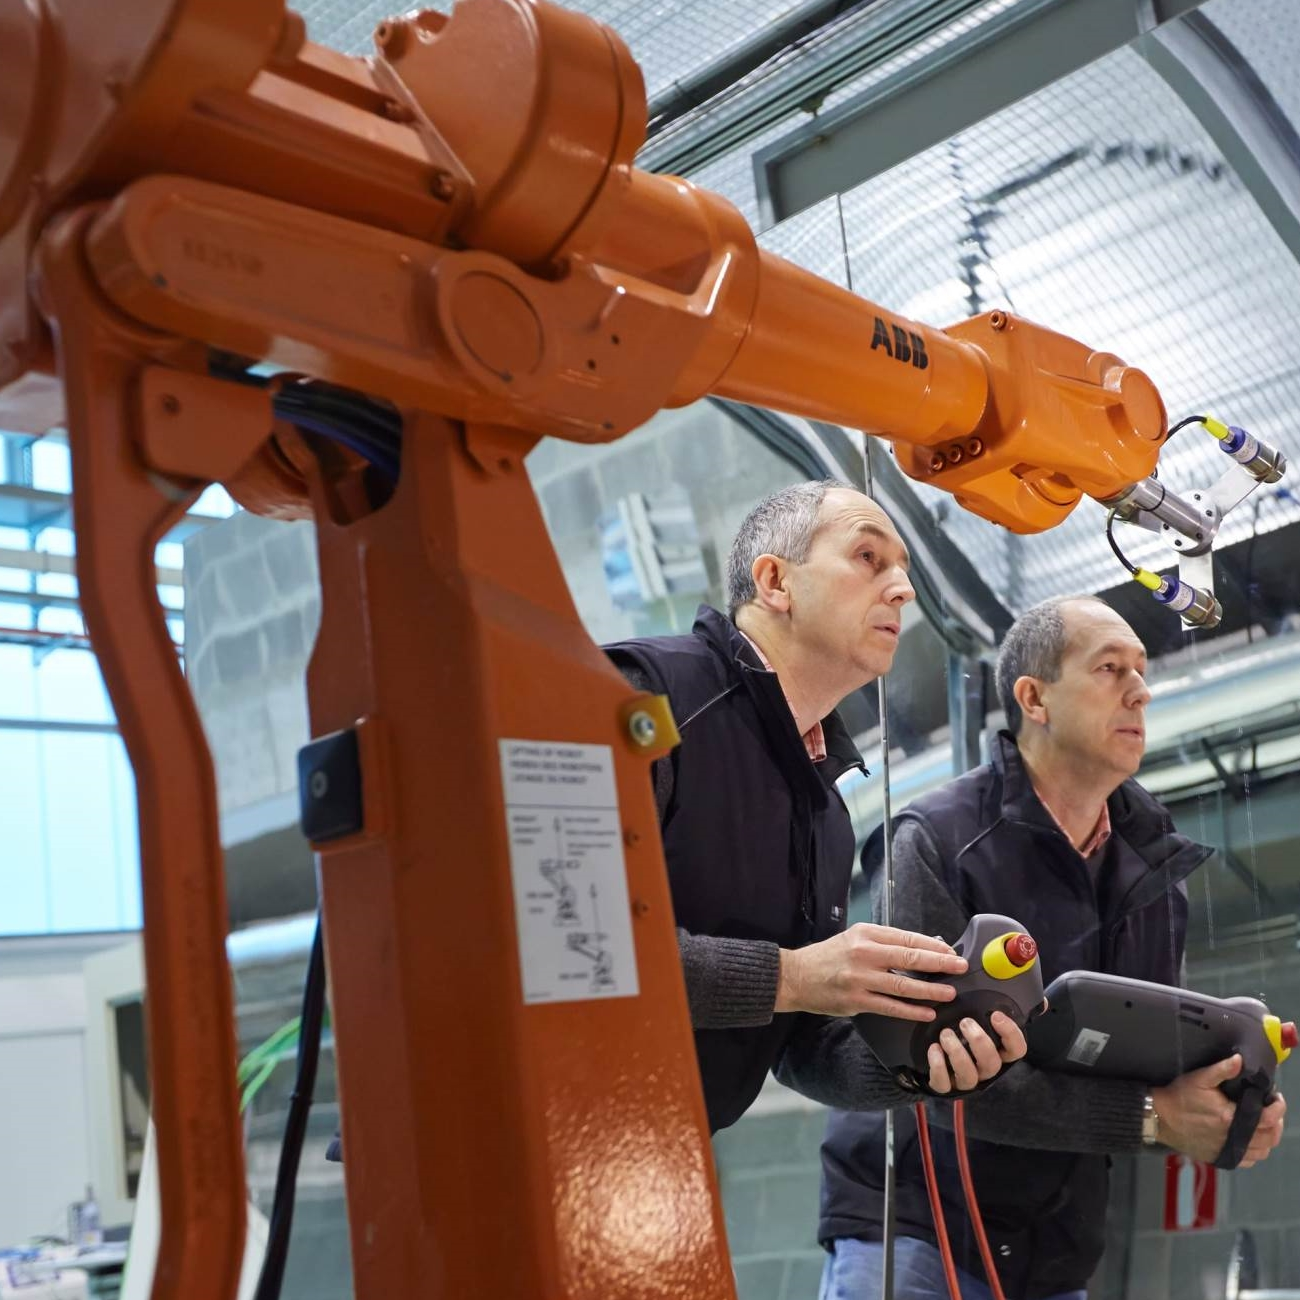 Technicians setting up an ABB industrial robot